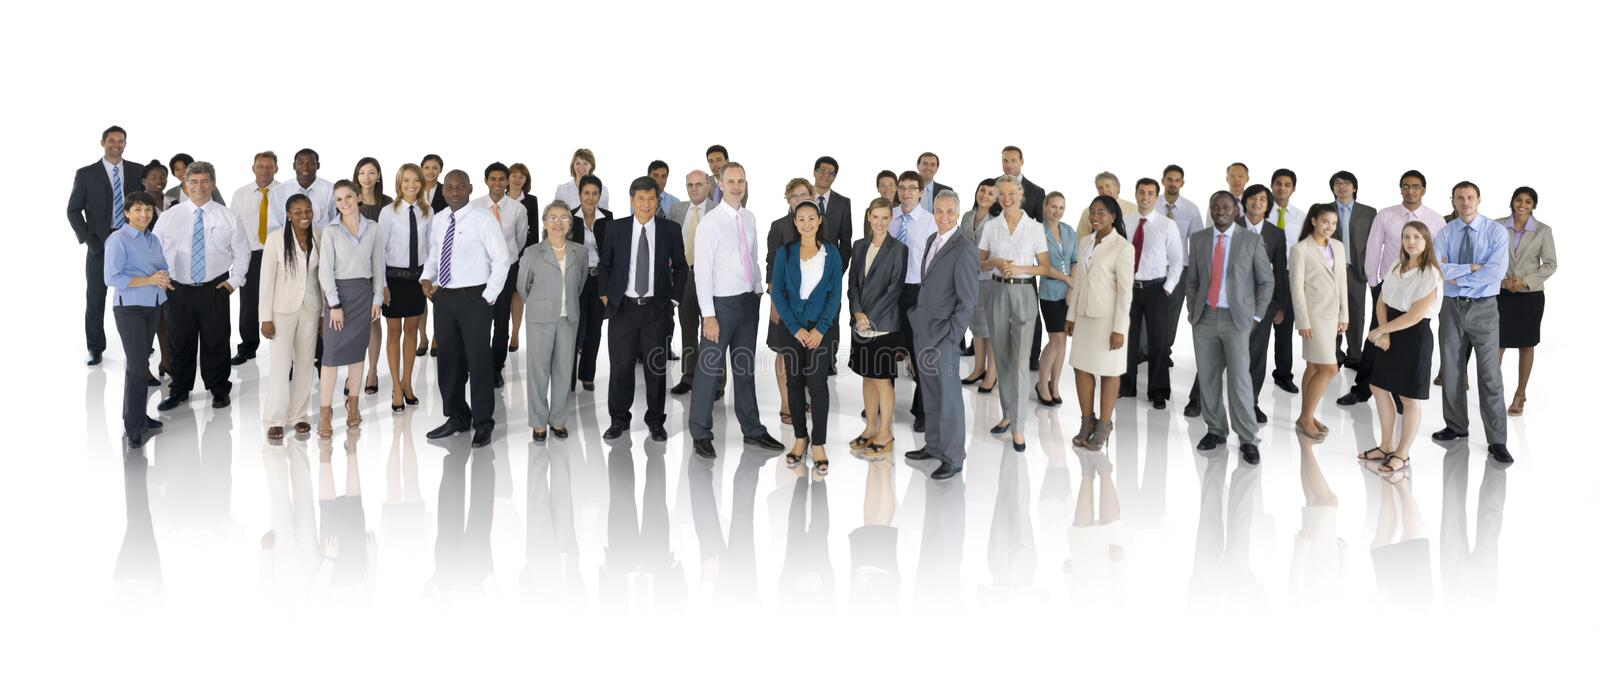 Group of Multiethnic World Business People royalty free stock image